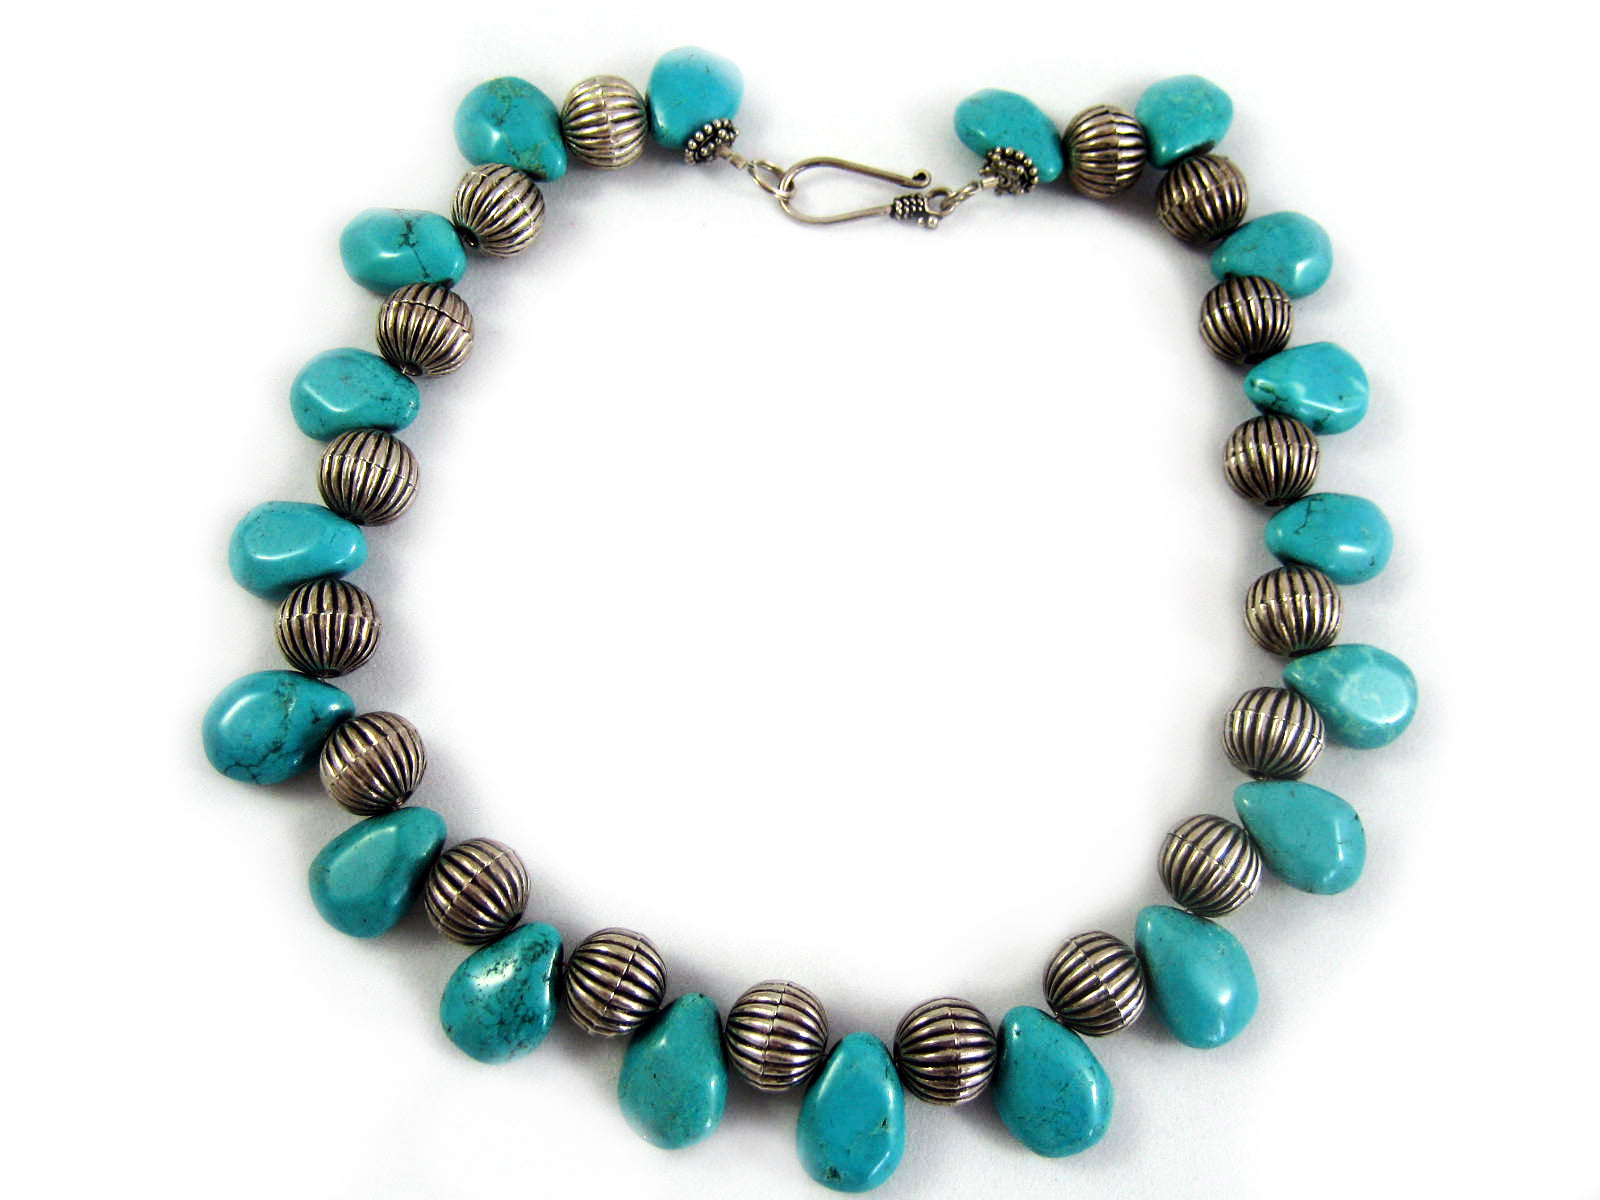 Pear shaped Turquoise Howlite drops between ridged antiqued round beads necklace